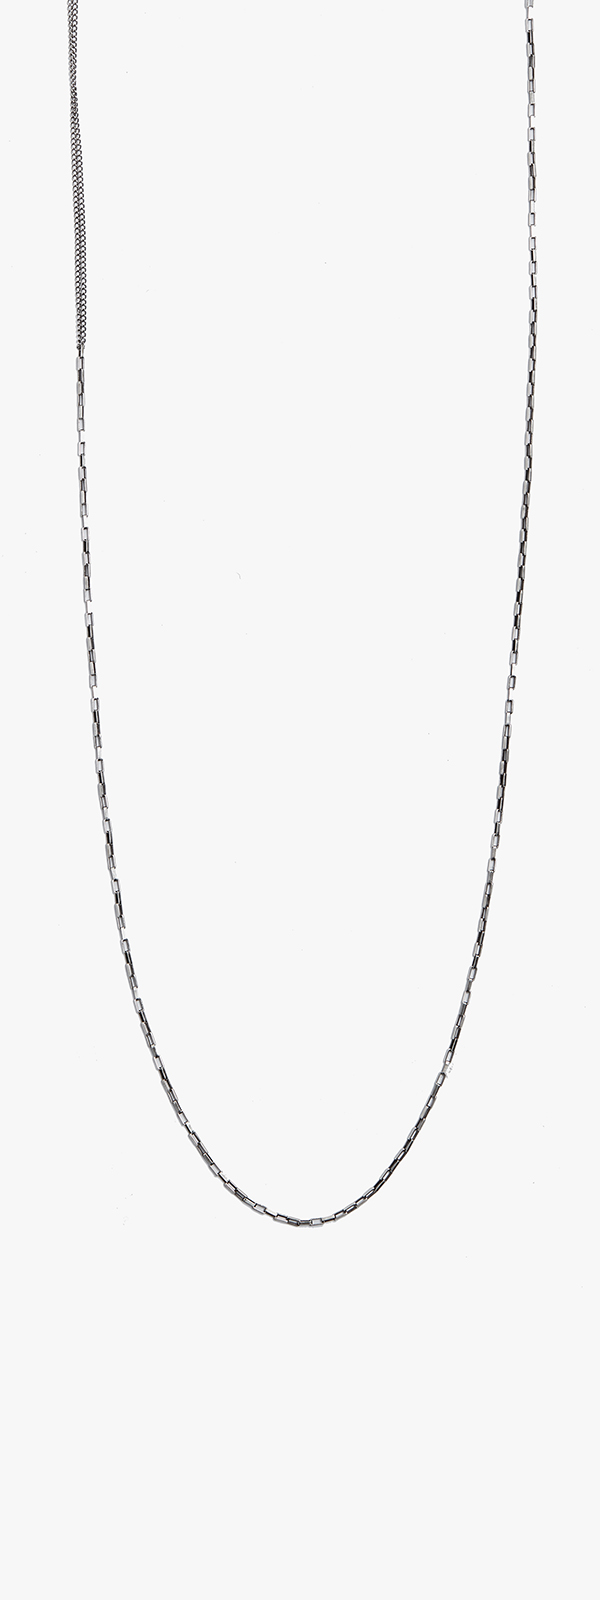 Double Wrap Curb to Box Chain Necklace